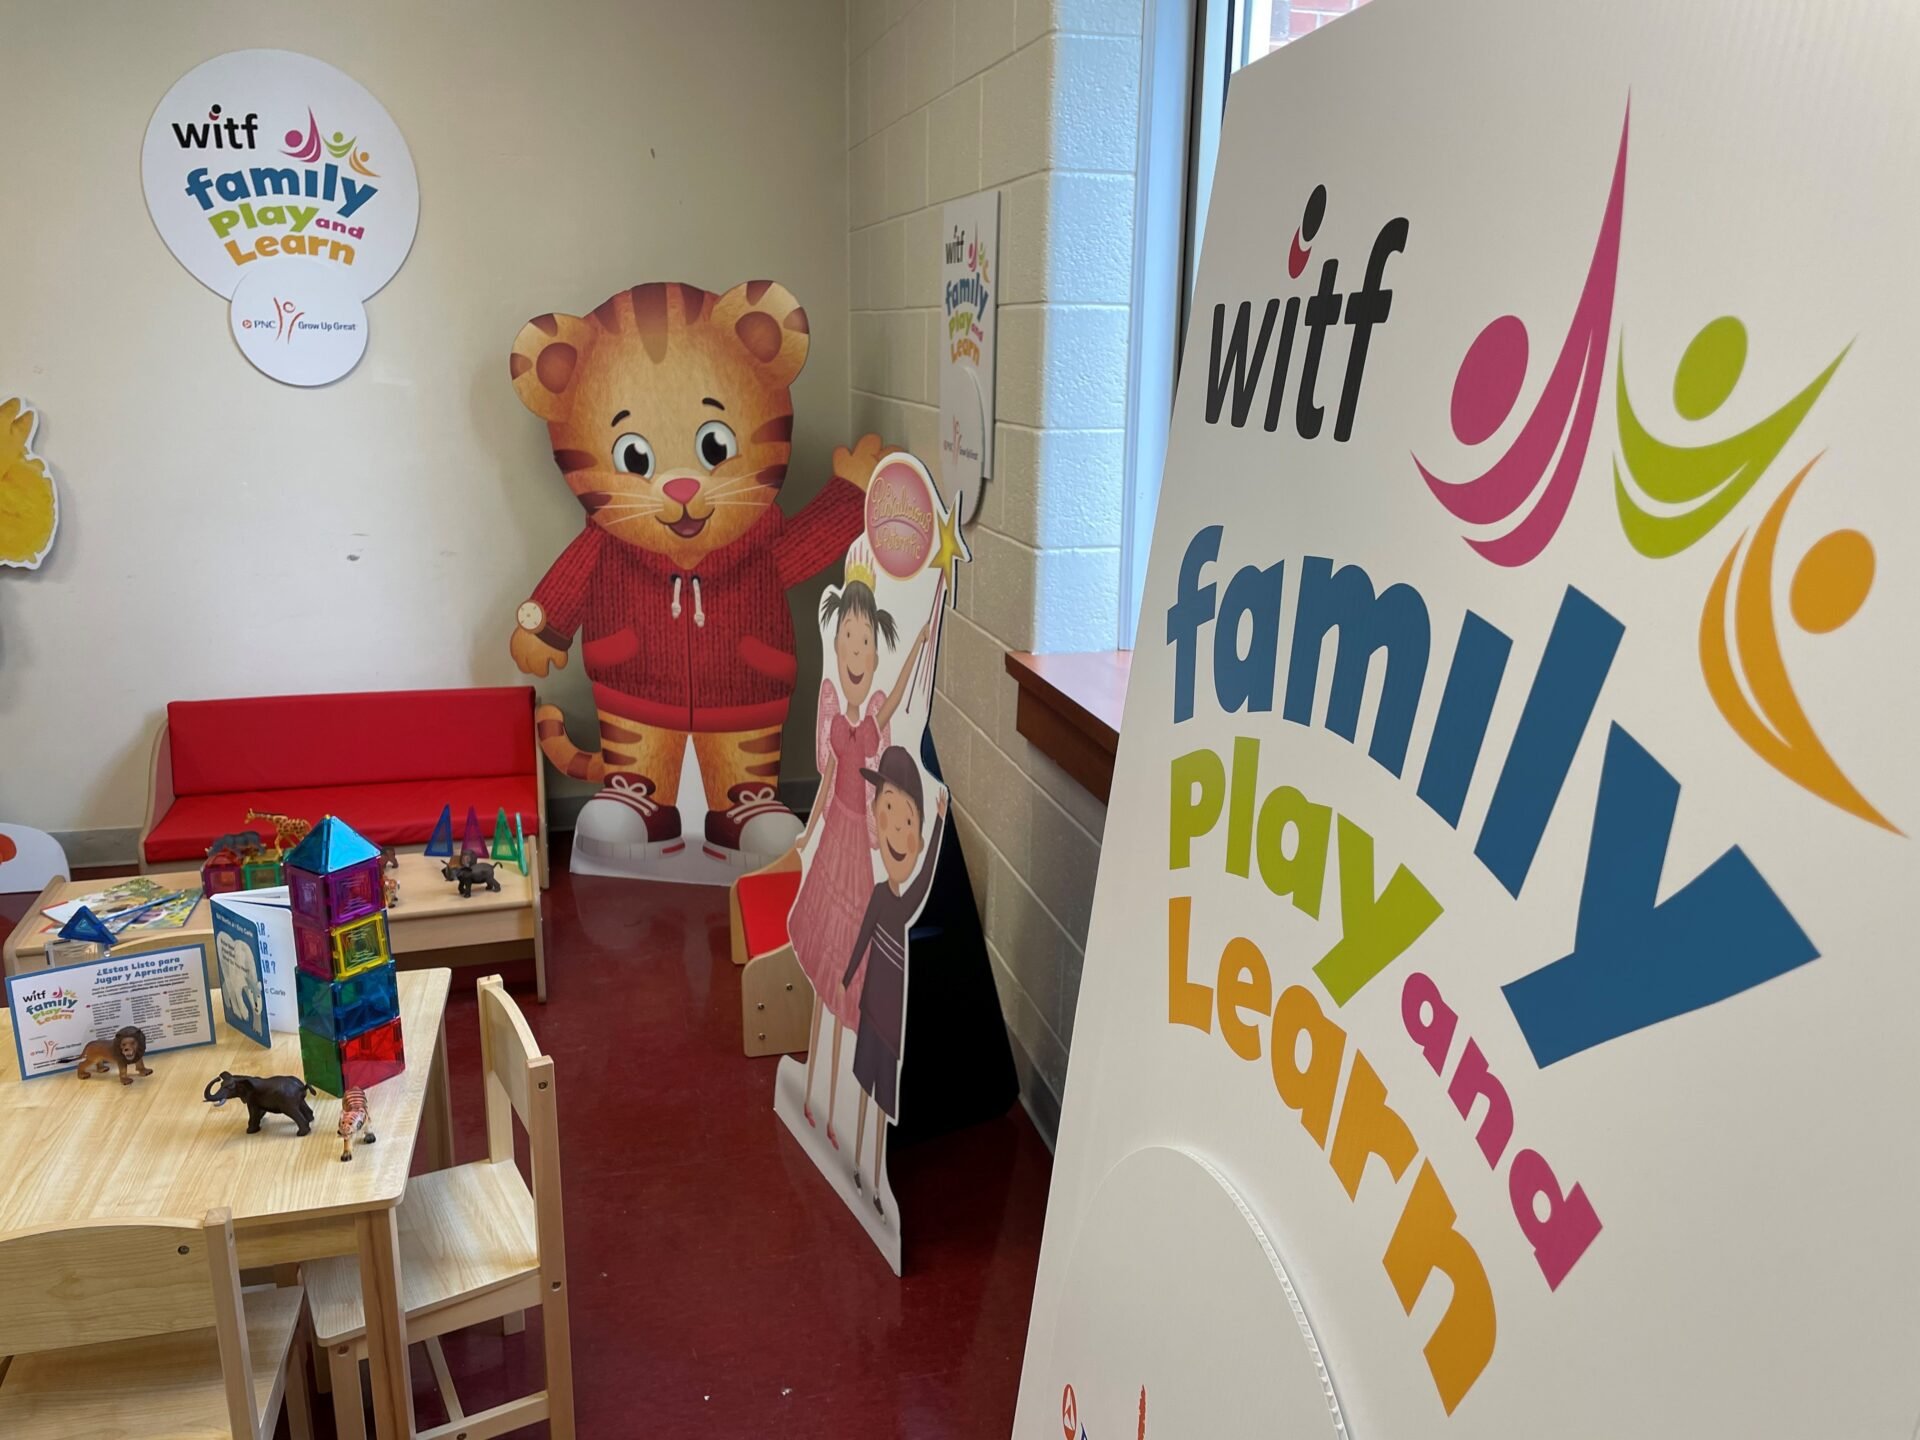 This WITF Family Play and Learn site at Bright Side Opportunities Center officially opened on Thursday, April 23, 2021, along with one at Crispus Attucks Community Center. (Photo: Kyle Gamble)